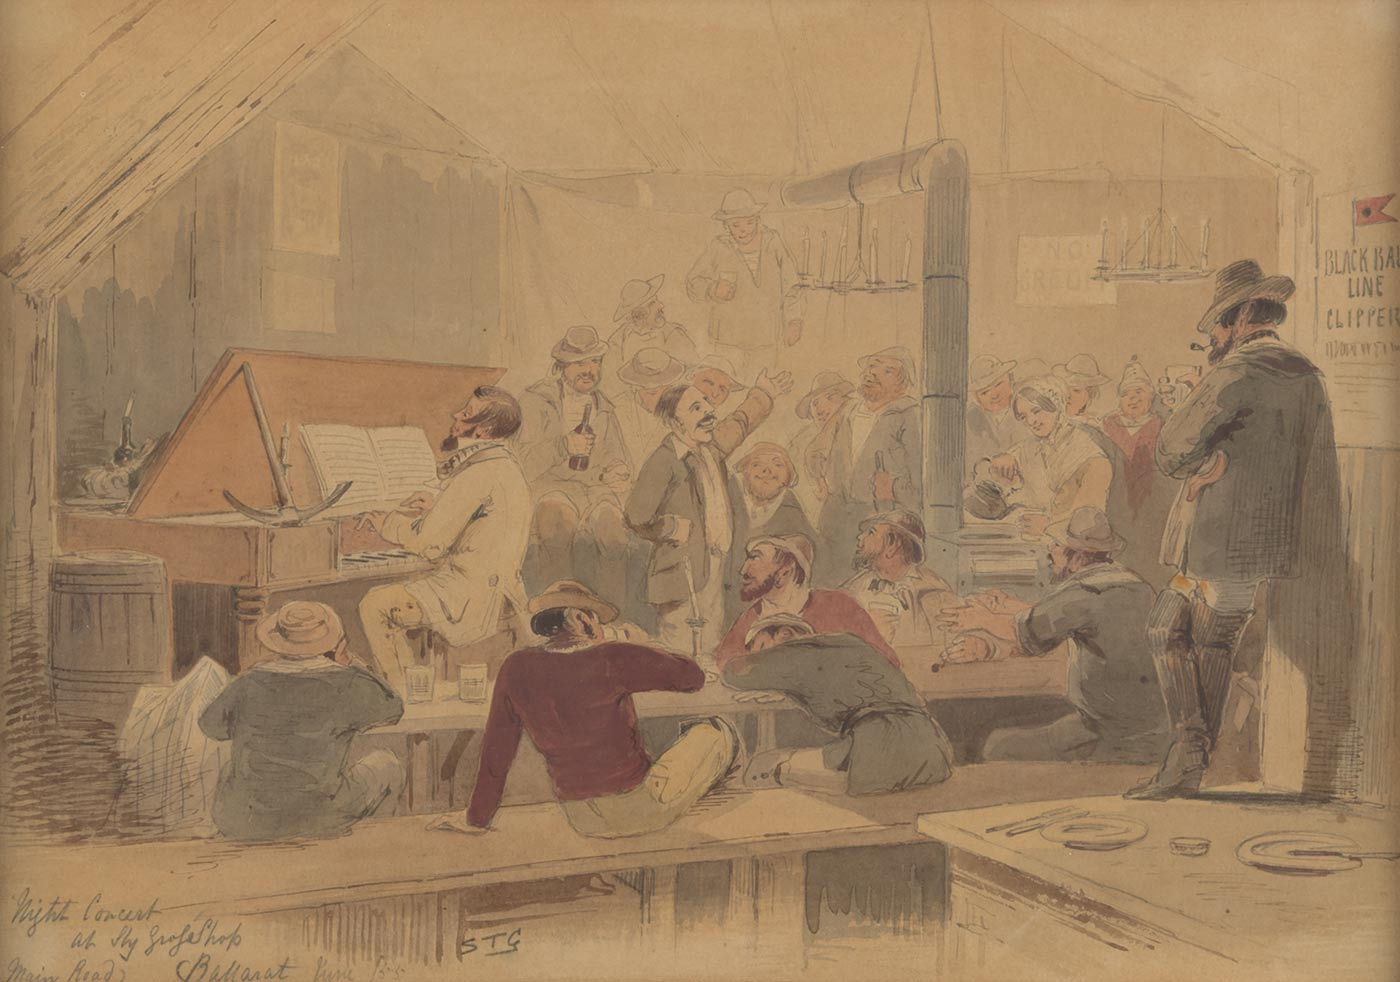 A watercolour painting on cream coloured paper painted in blues, reds, browns and greys depicting a scene inside a bar. The scene includes a man playing a piano and a crowd of men sitting on or standing around benches and tables. There is also a woman serving a drink out of a kettle. Handwritten in pencil in the bottom left hand corner is 'Night Concert / at Sly Grog Shop / (Main Road) Ballarat June /55' and 'STG'. - click to view larger image